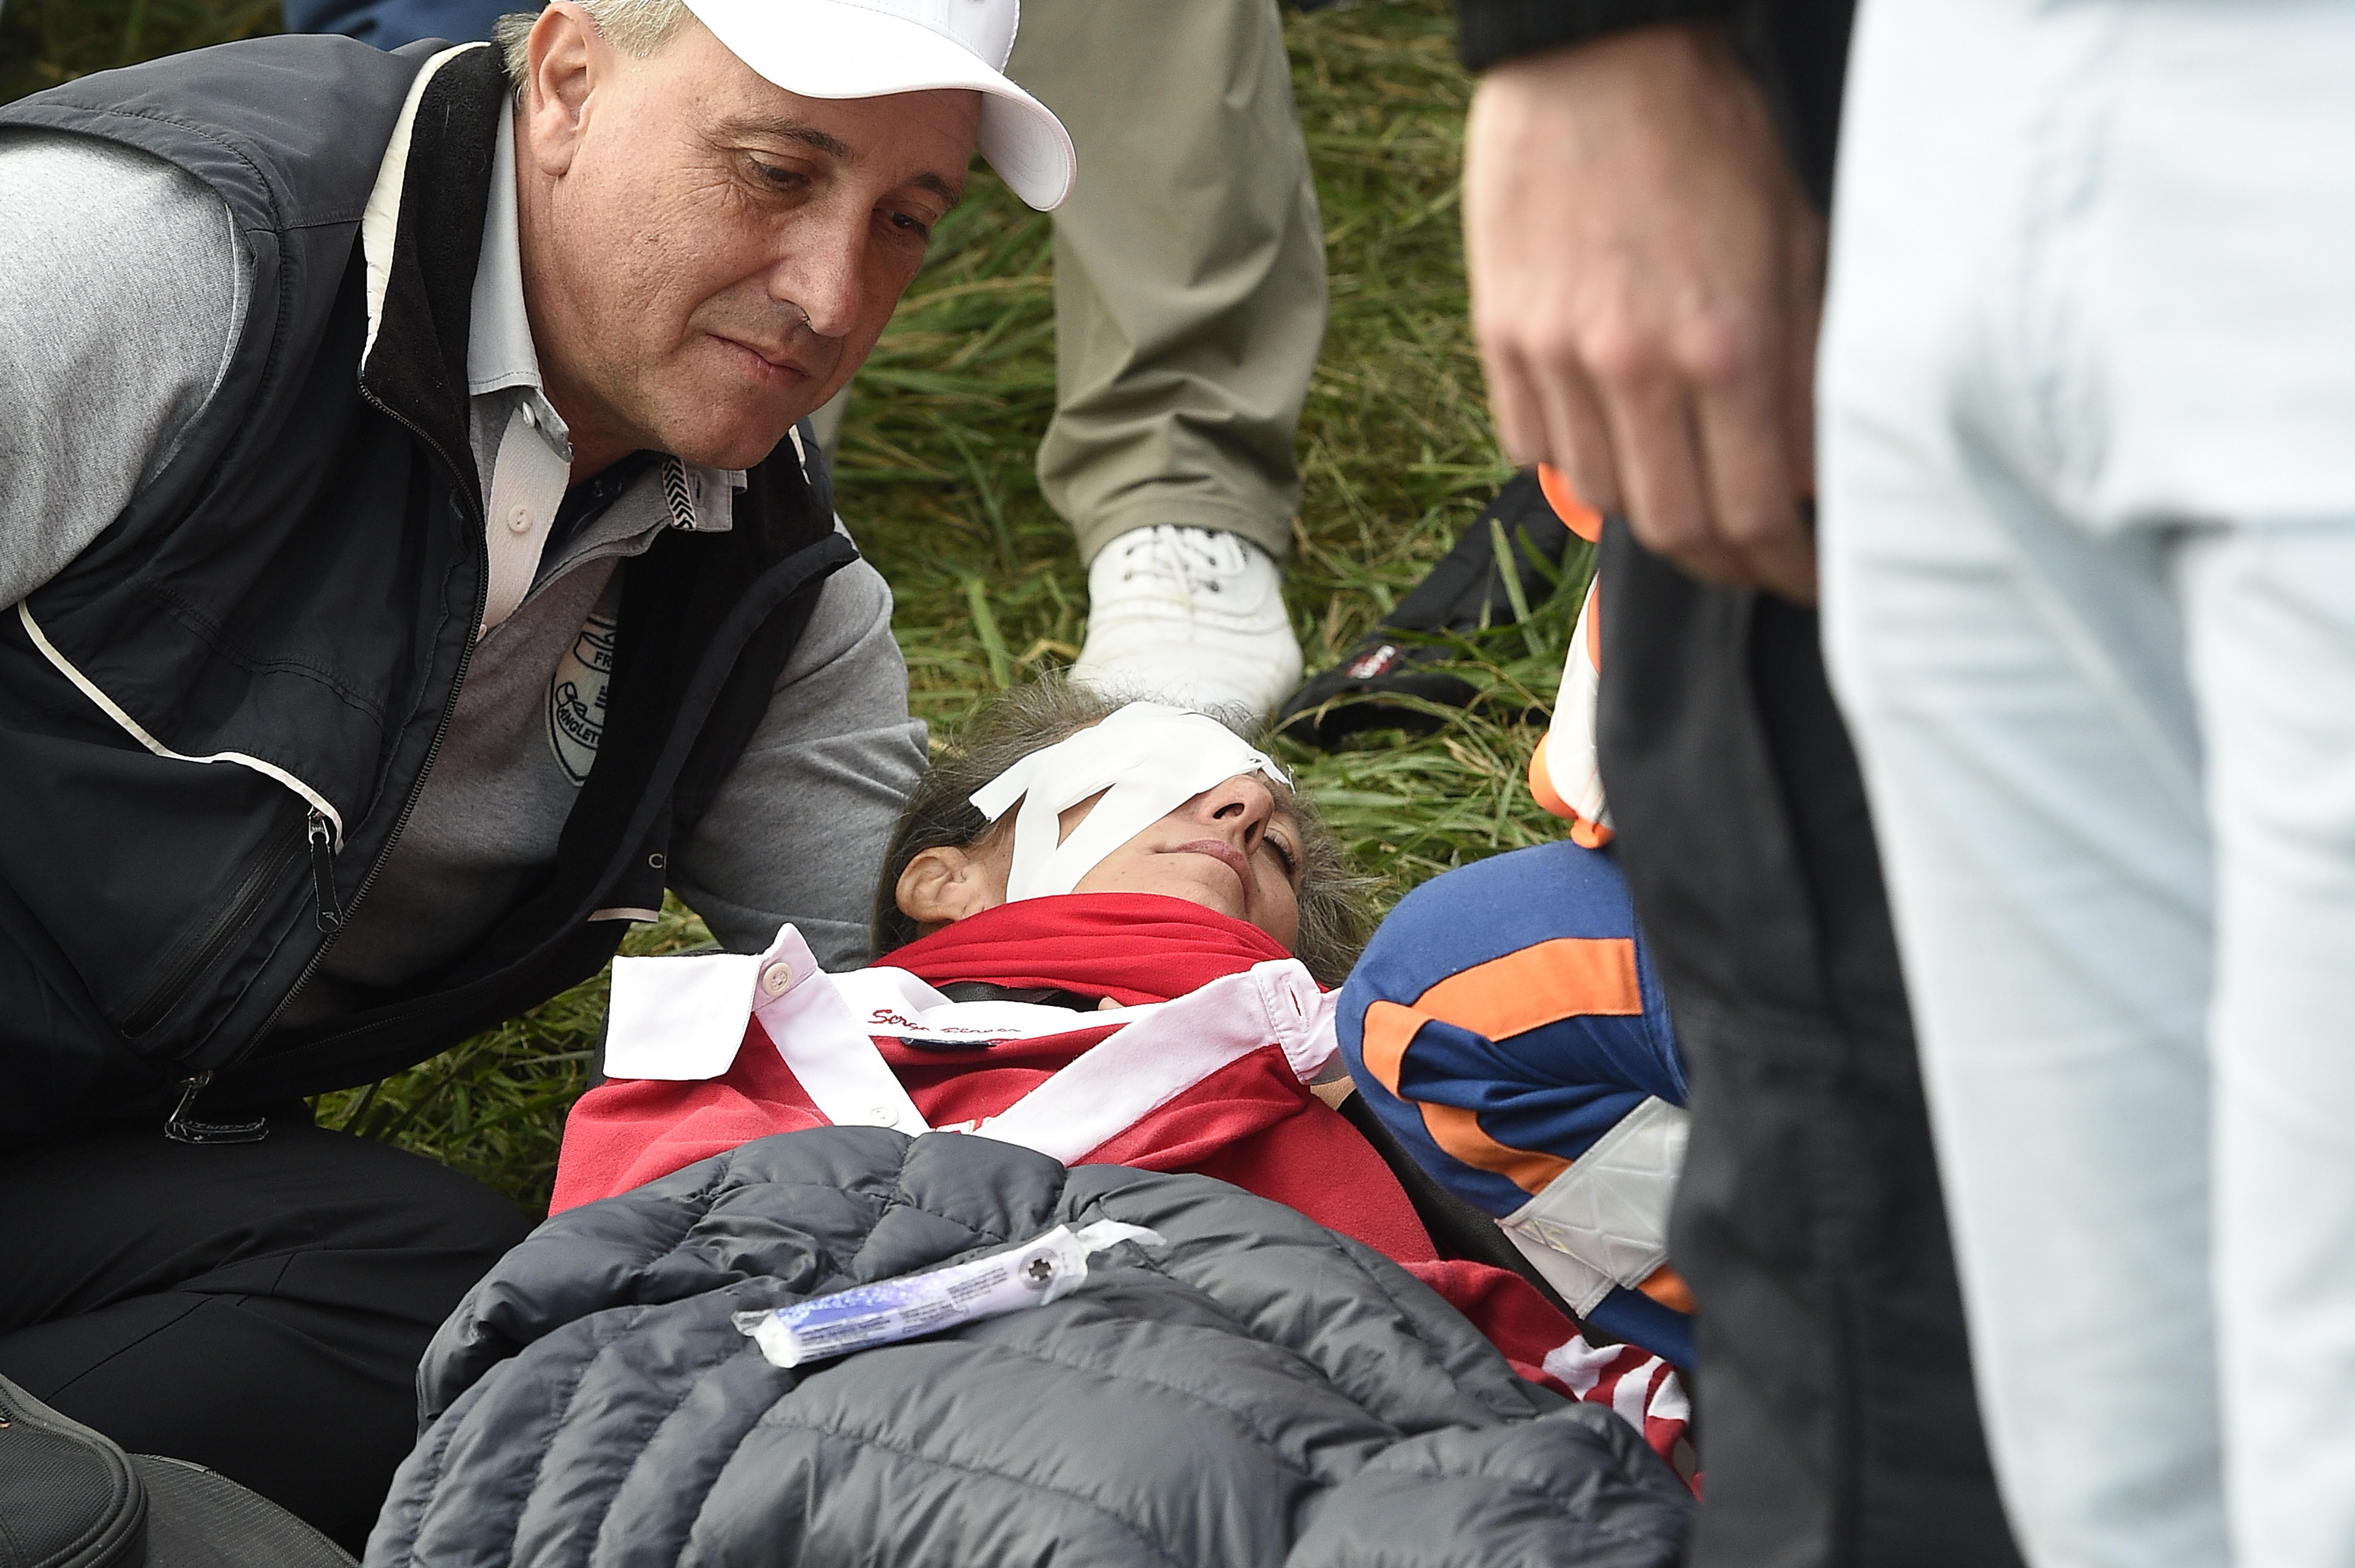 Corine Remande is reportedly set to sue the Ryder Cup organisers following the tragic incident